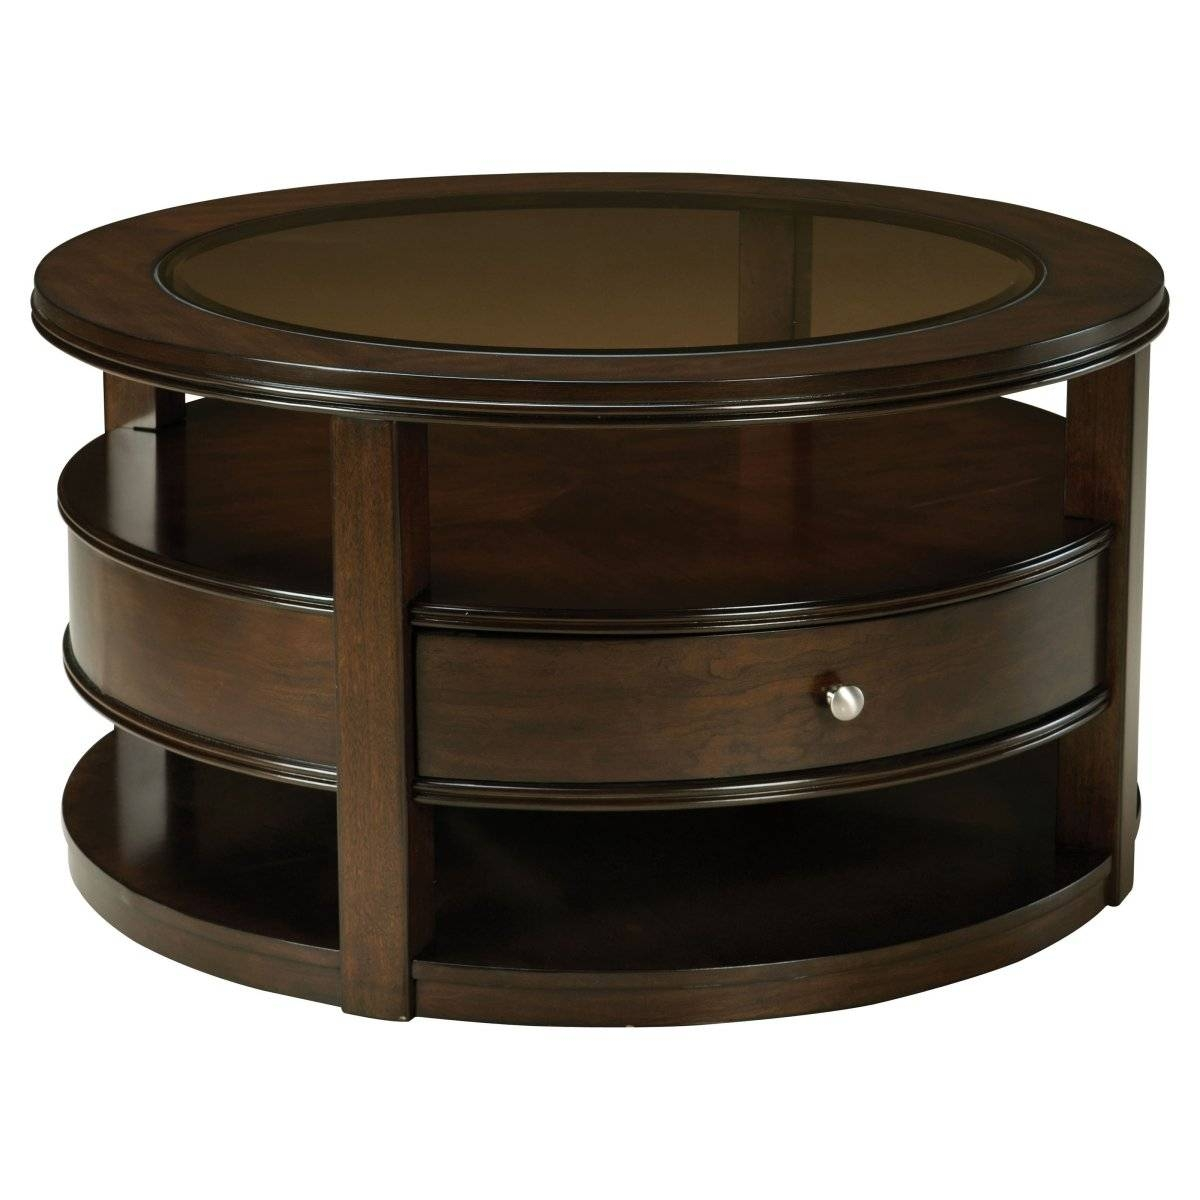 Round Coffee Tables With Storage | Homesfeed within Round Coffee Tables (Image 26 of 30)